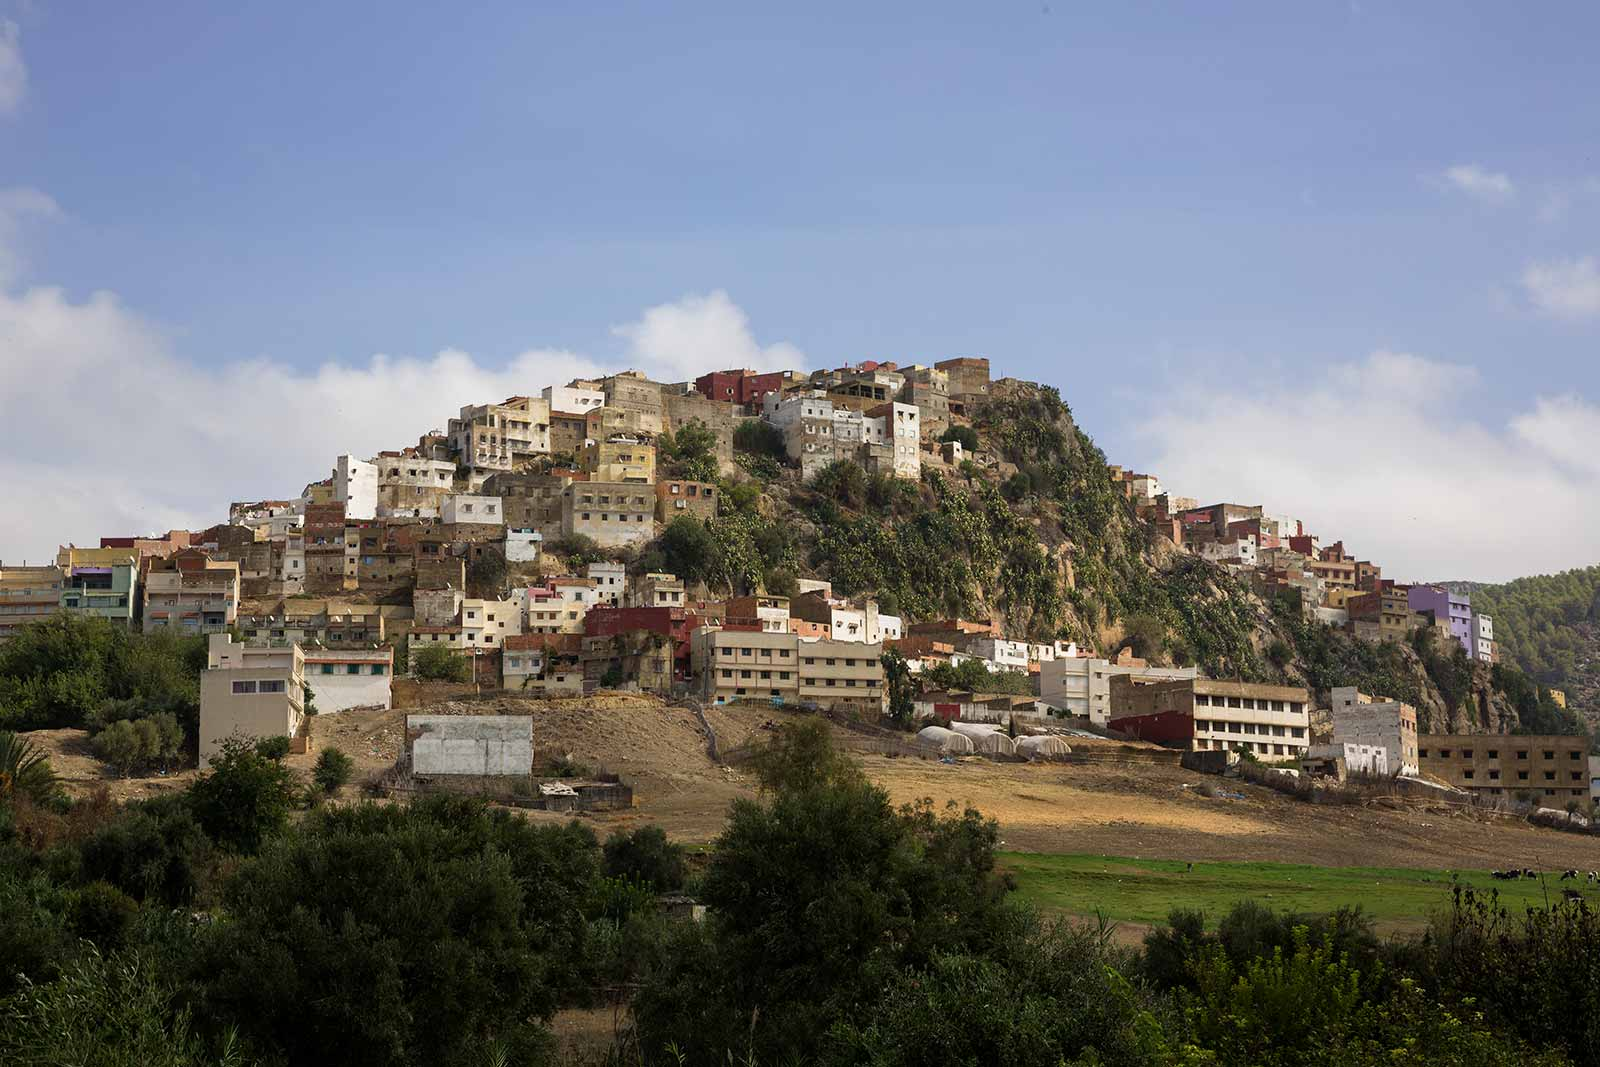 Moulay Idriss is reachable by just a pair of roads and spreads across two foothills of Mount Zerhoun, at the base of the Atlas Mountains.